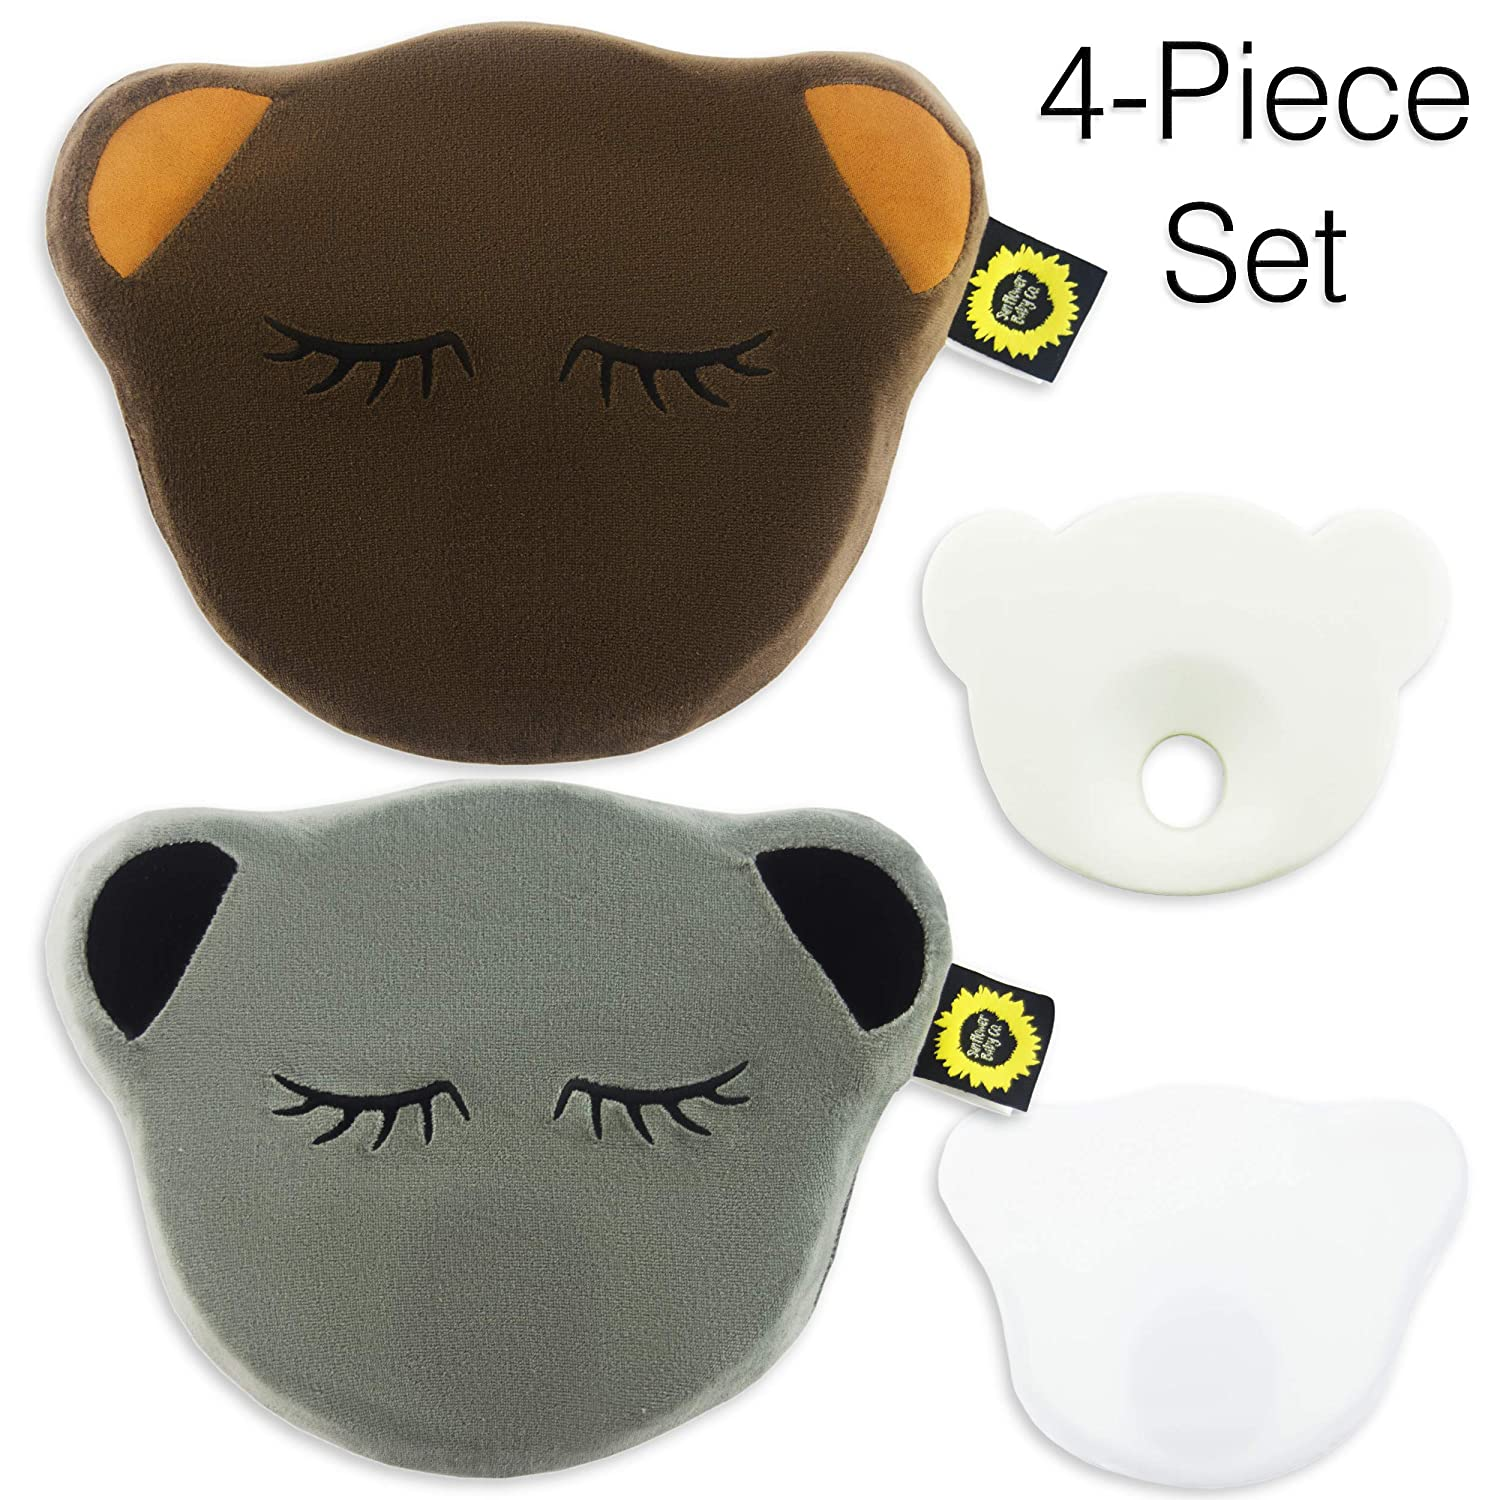 4 Piece Set - Anti Flat Head Shaping Baby Pillow (Brown/Grey, Bear Shape) Sunflower Baby Co.